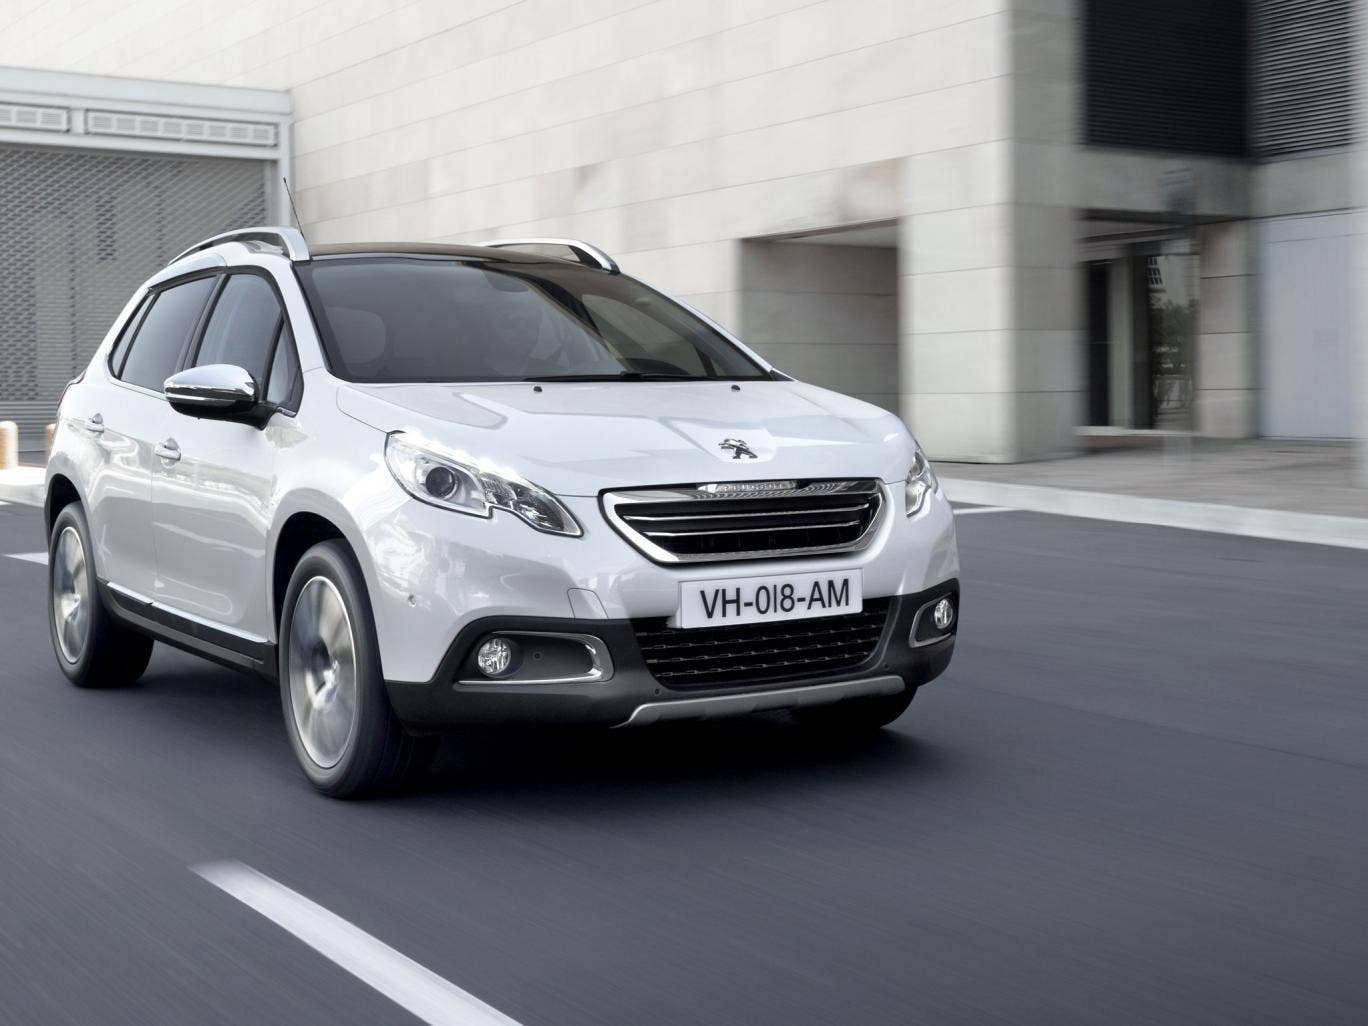 The Peugeot 2008 Crossover has got a utilitarian charm